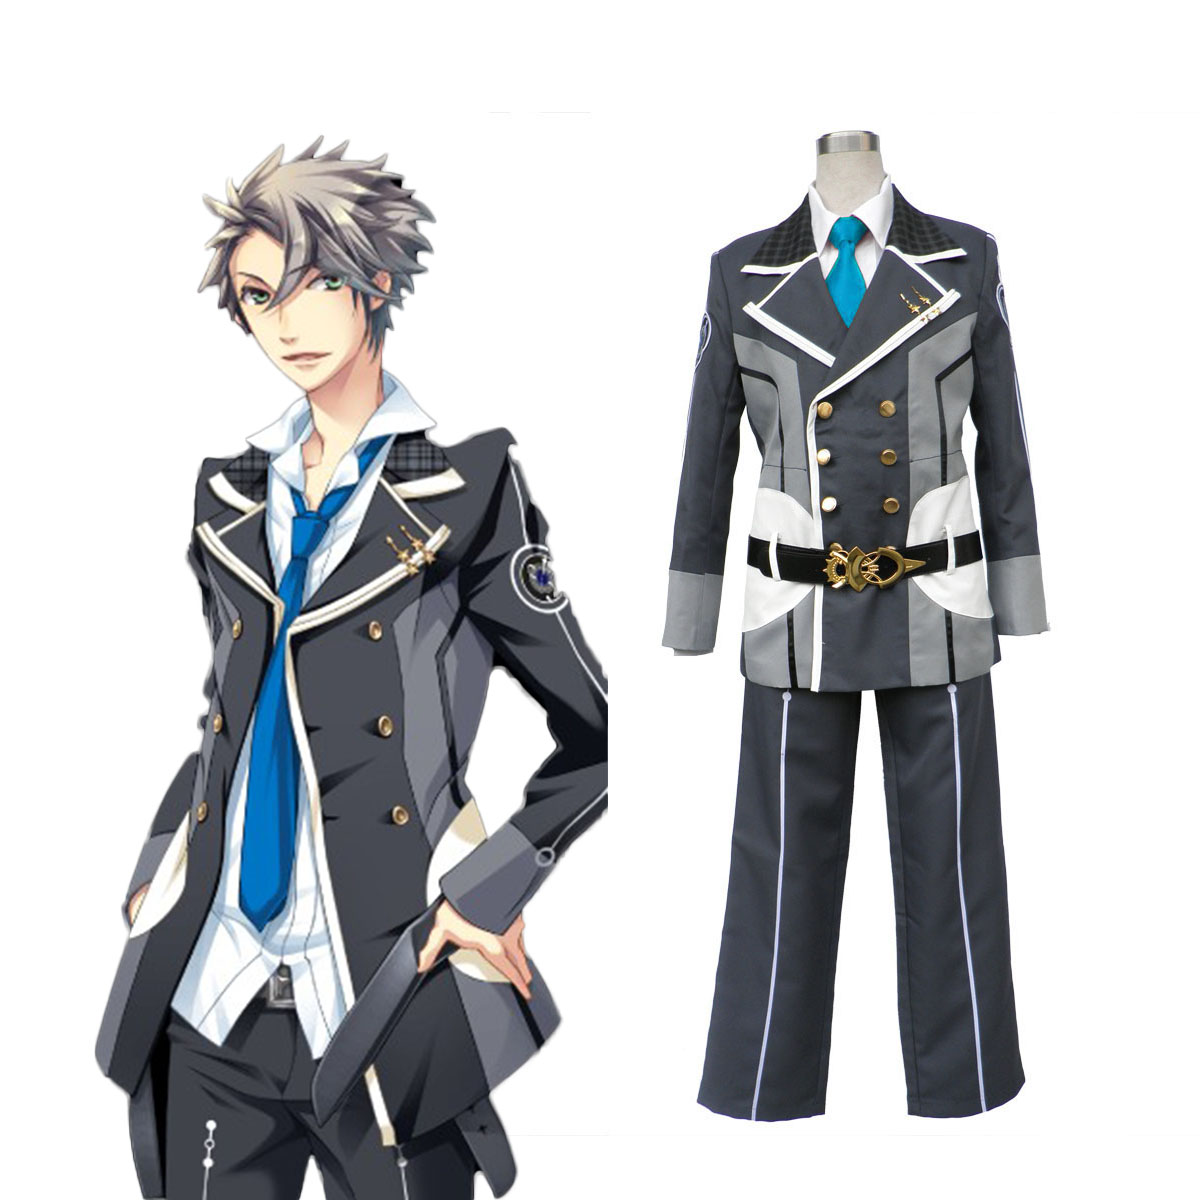 Starry Sky Male Winter School Uniform 3 Cosplay Costumes AU